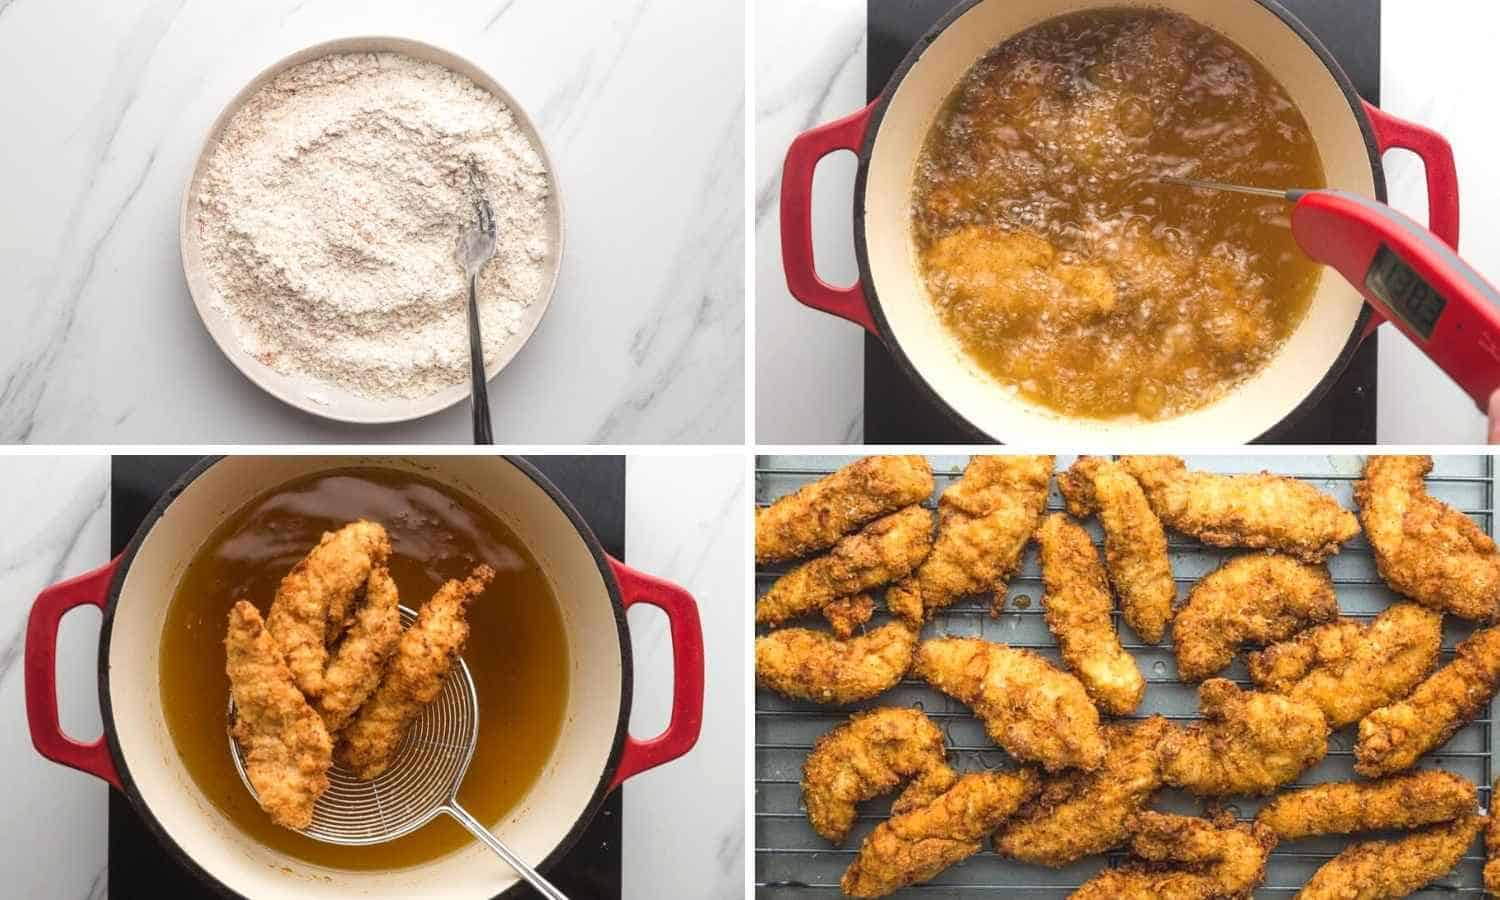 Collage of four images showing how to fry chicken tenders